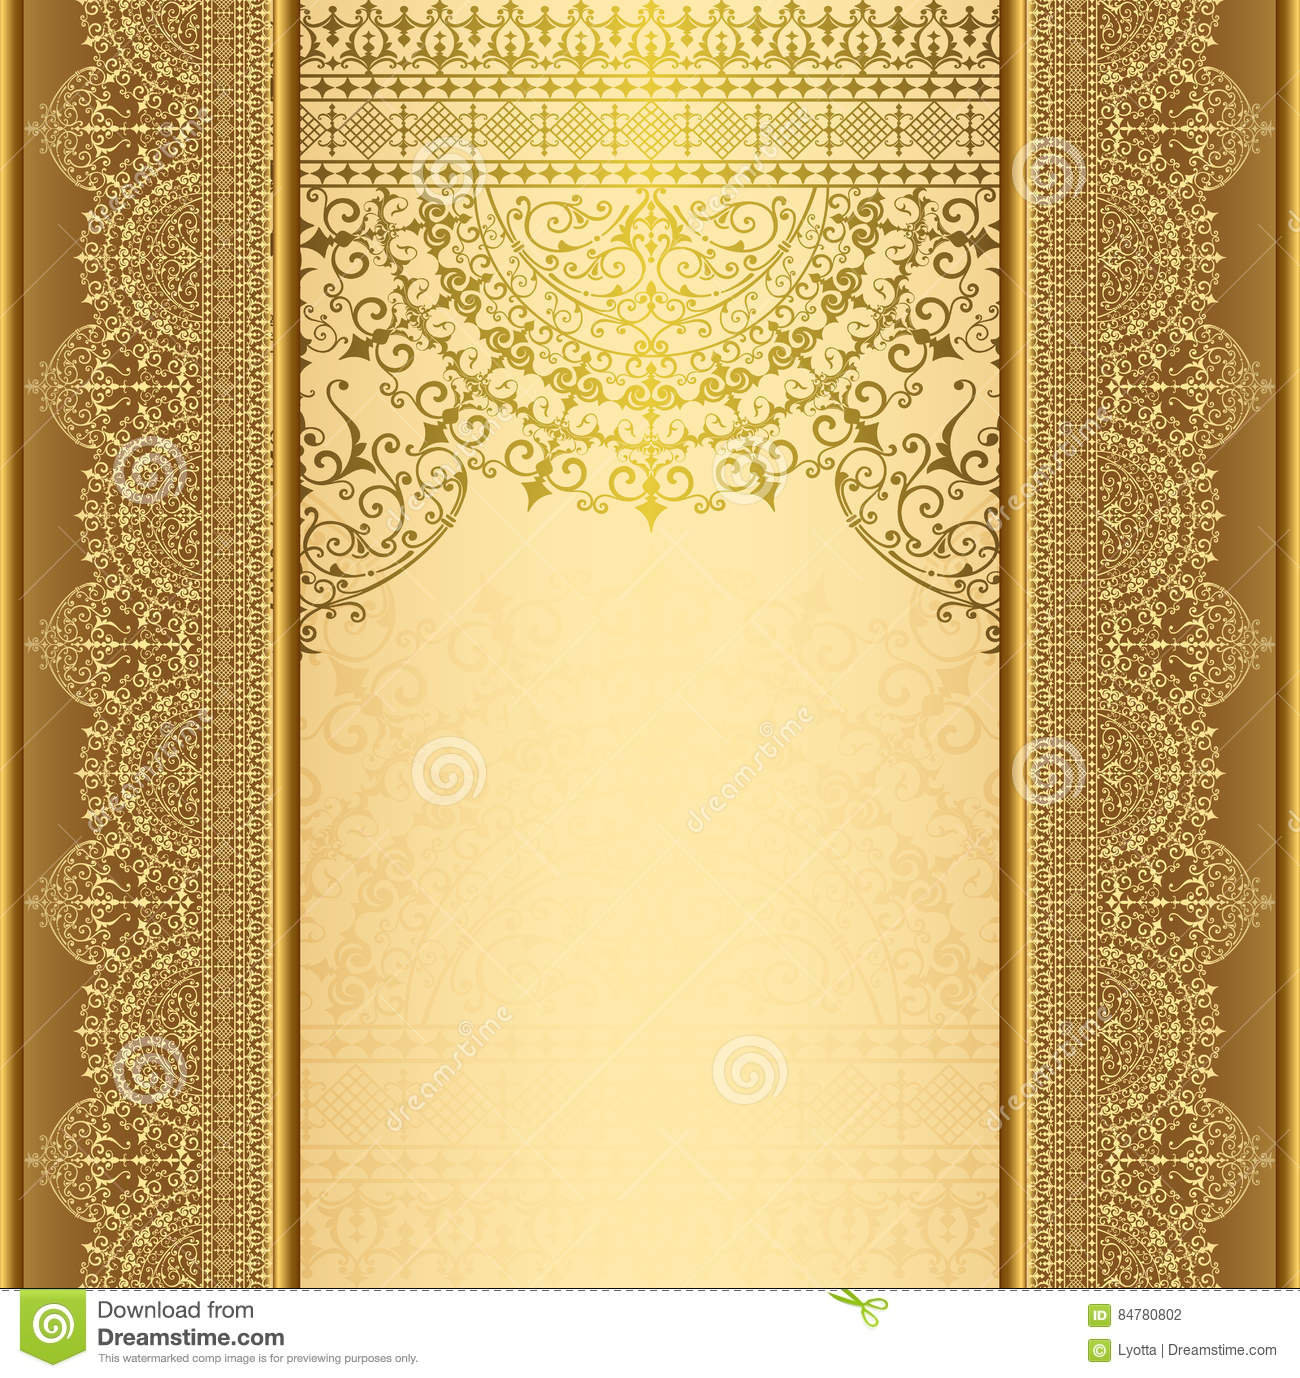 promise Ring Silhouette From Top Or Bottom View 732416 likewise Golden Border Cliparts together with Royalty Free Stock Photography Jingle Bell Single Brass Christmas White Background Image34641107 together with Golden Bell 13729902 additionally Stock Image Lucky Horseshoe Golden Bell Image26302811. on vector gold bell